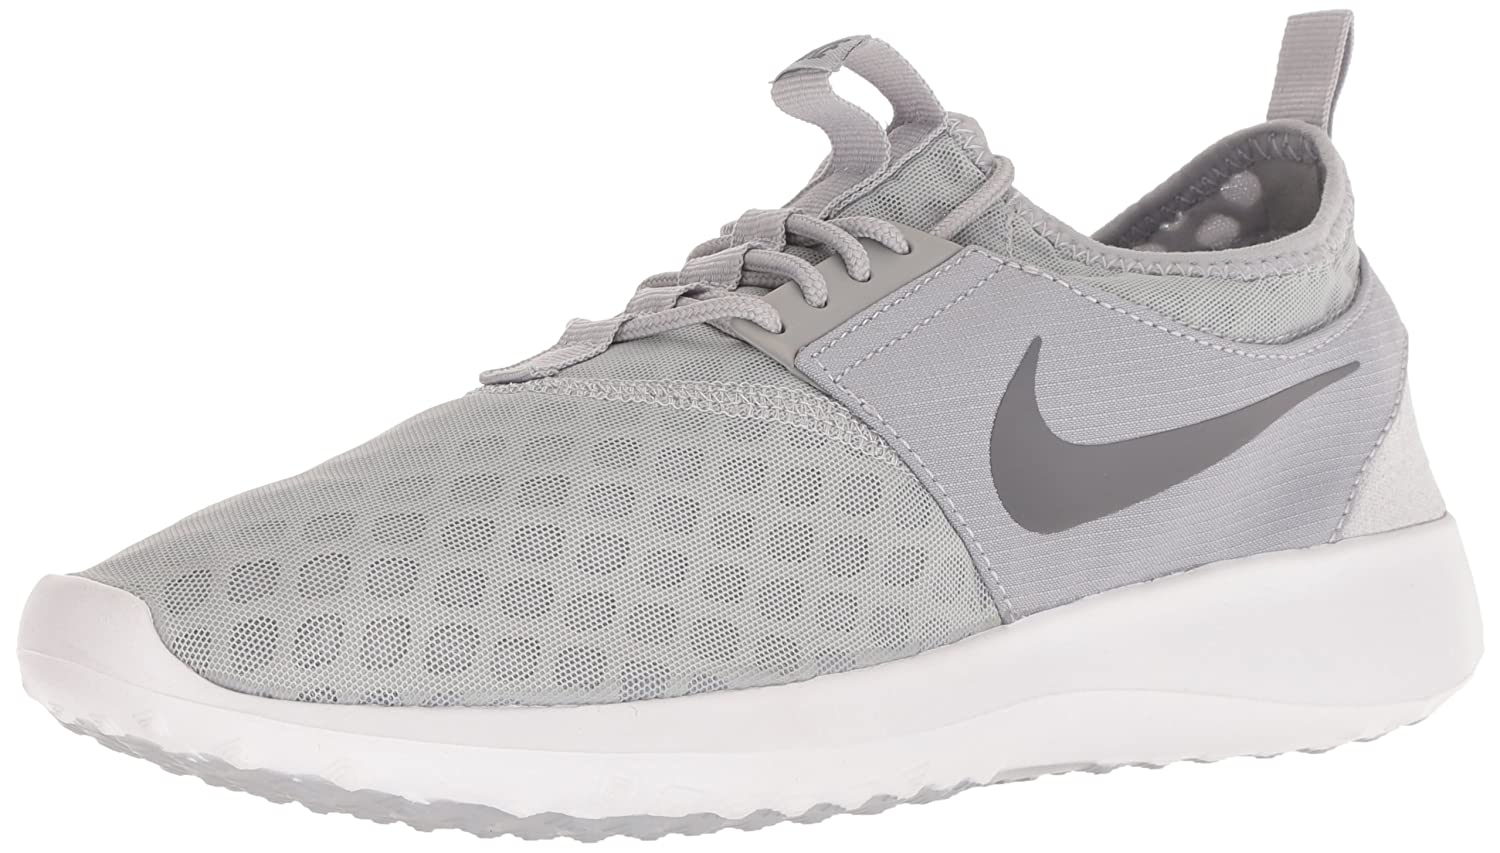 NIKE Women's Juvenate Running Shoe B071J4MVS2 7.5 B(M) US|Cool Grey/Cool Grey/Sunset Glow/White